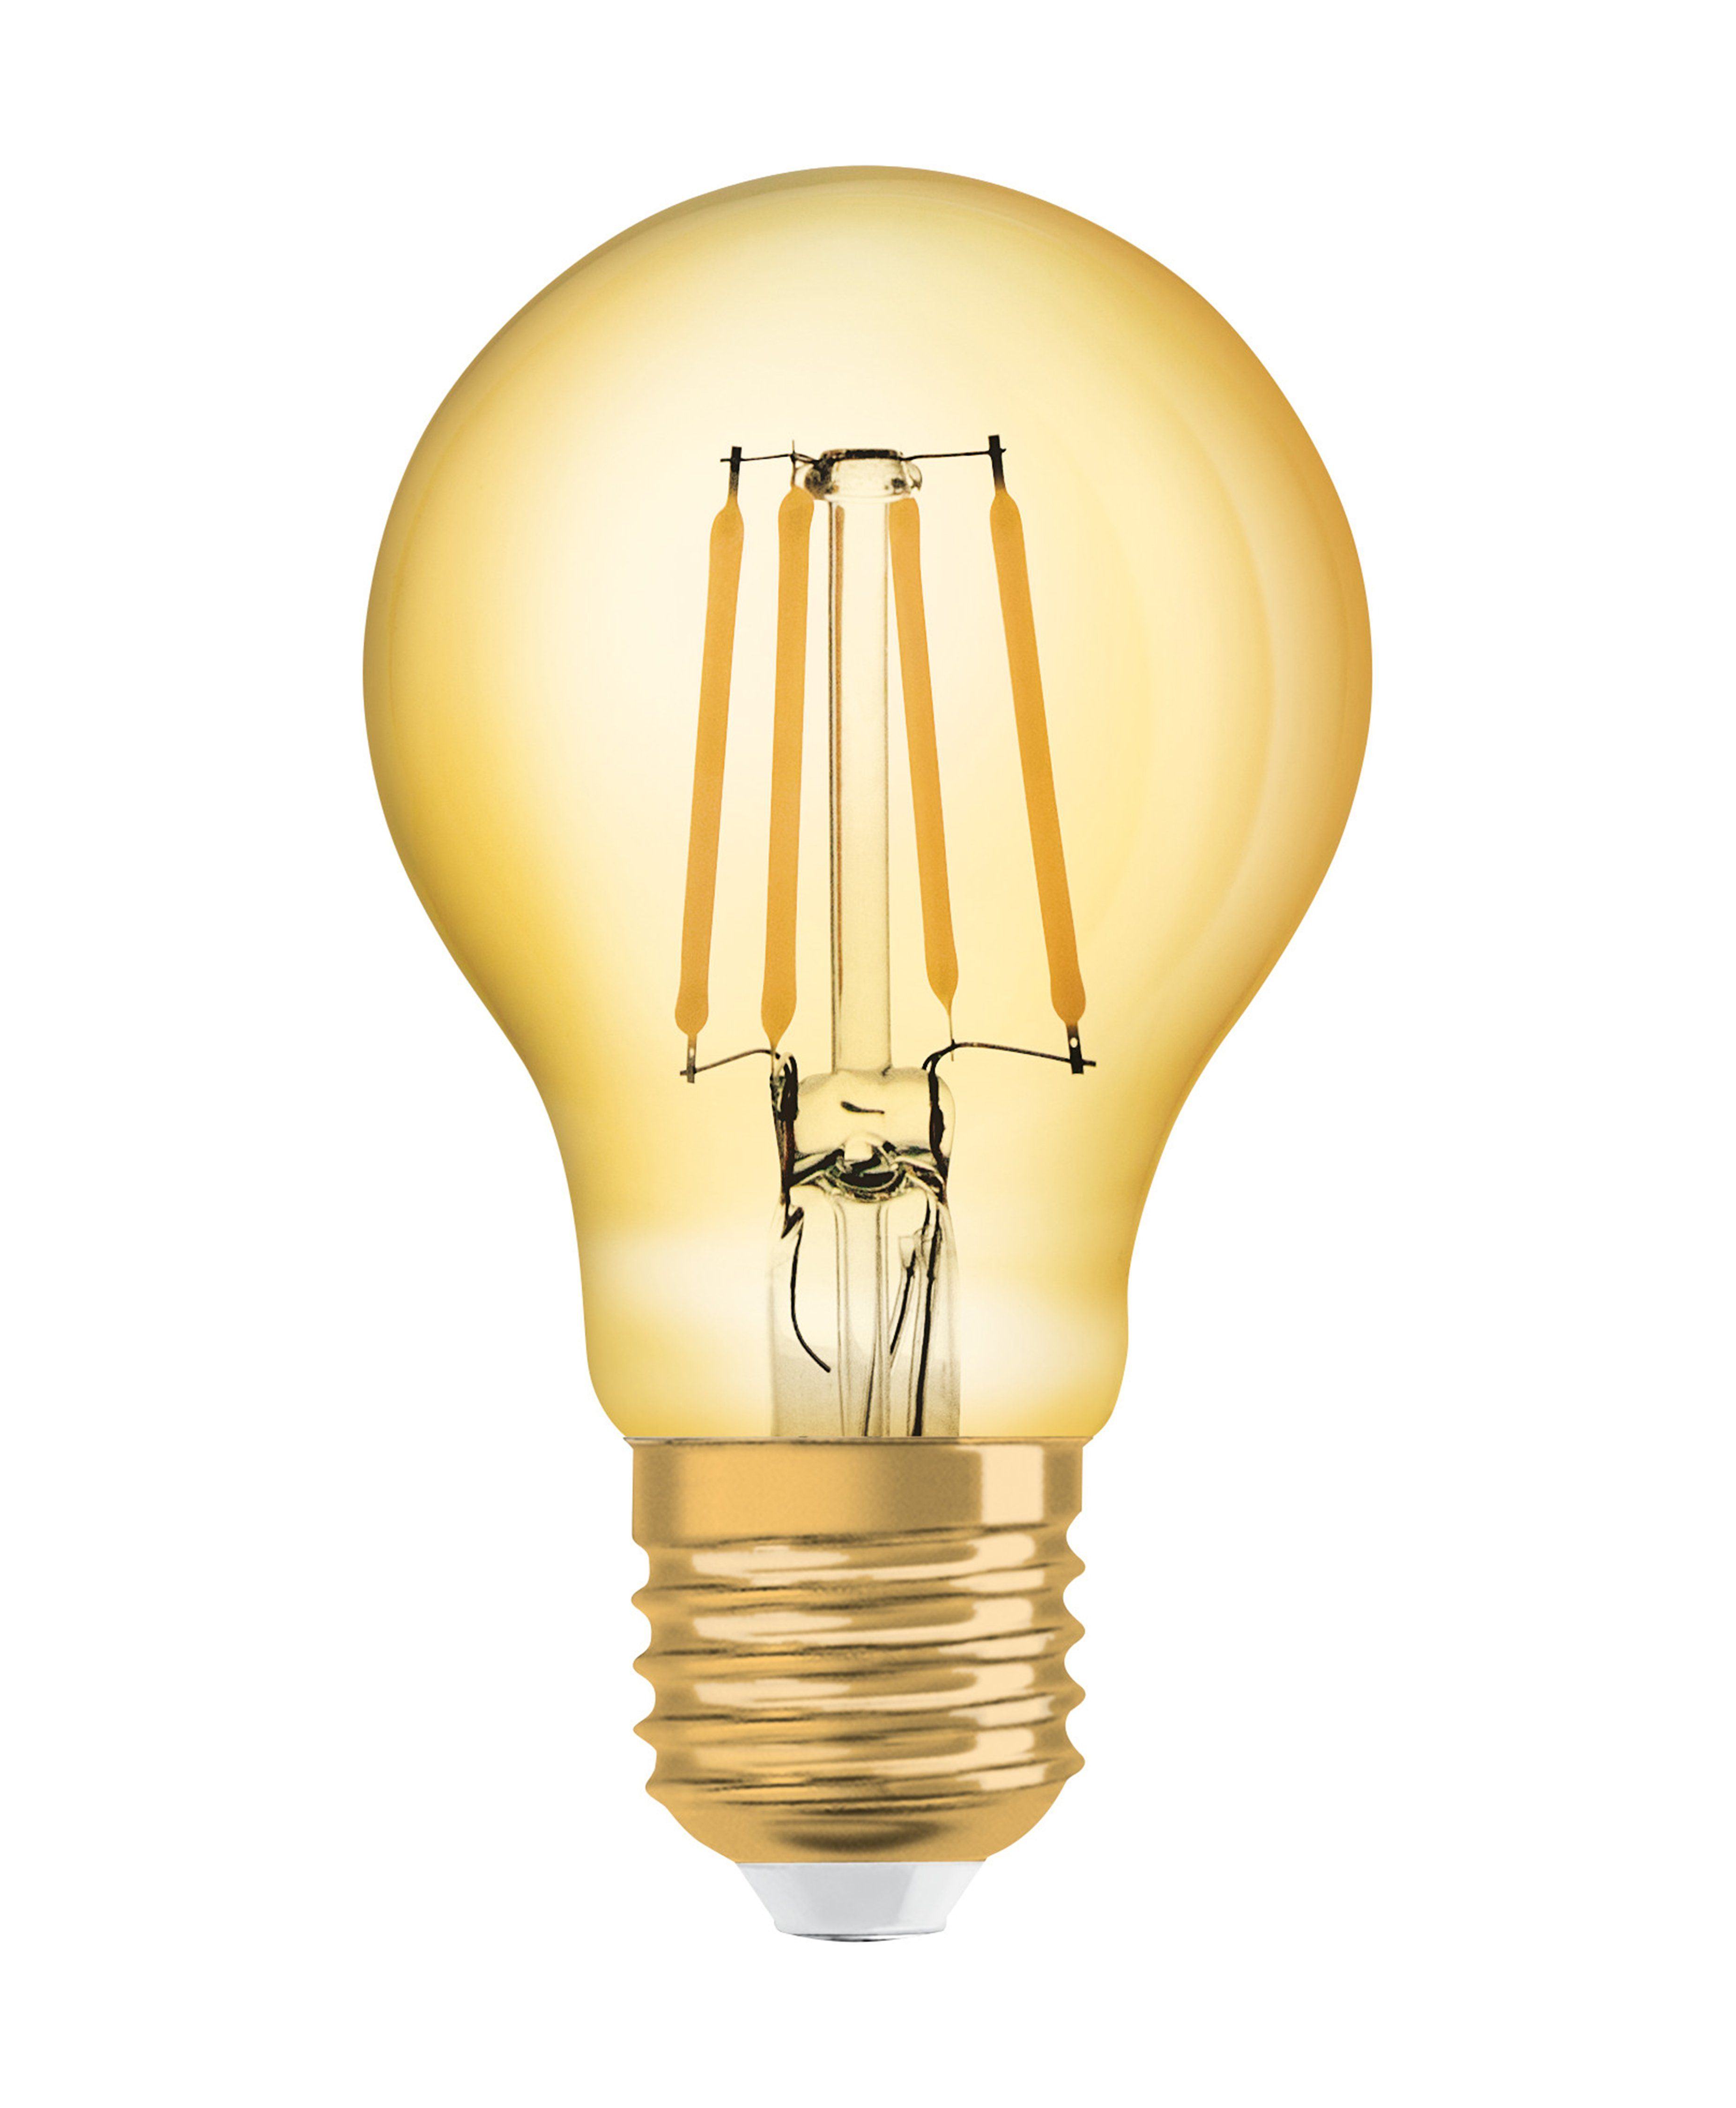 Osram LED-Lampe, Vintage-Edition, Kolbenform »Vintage 1906 LED 55 7 W/825 E27 GOLD«